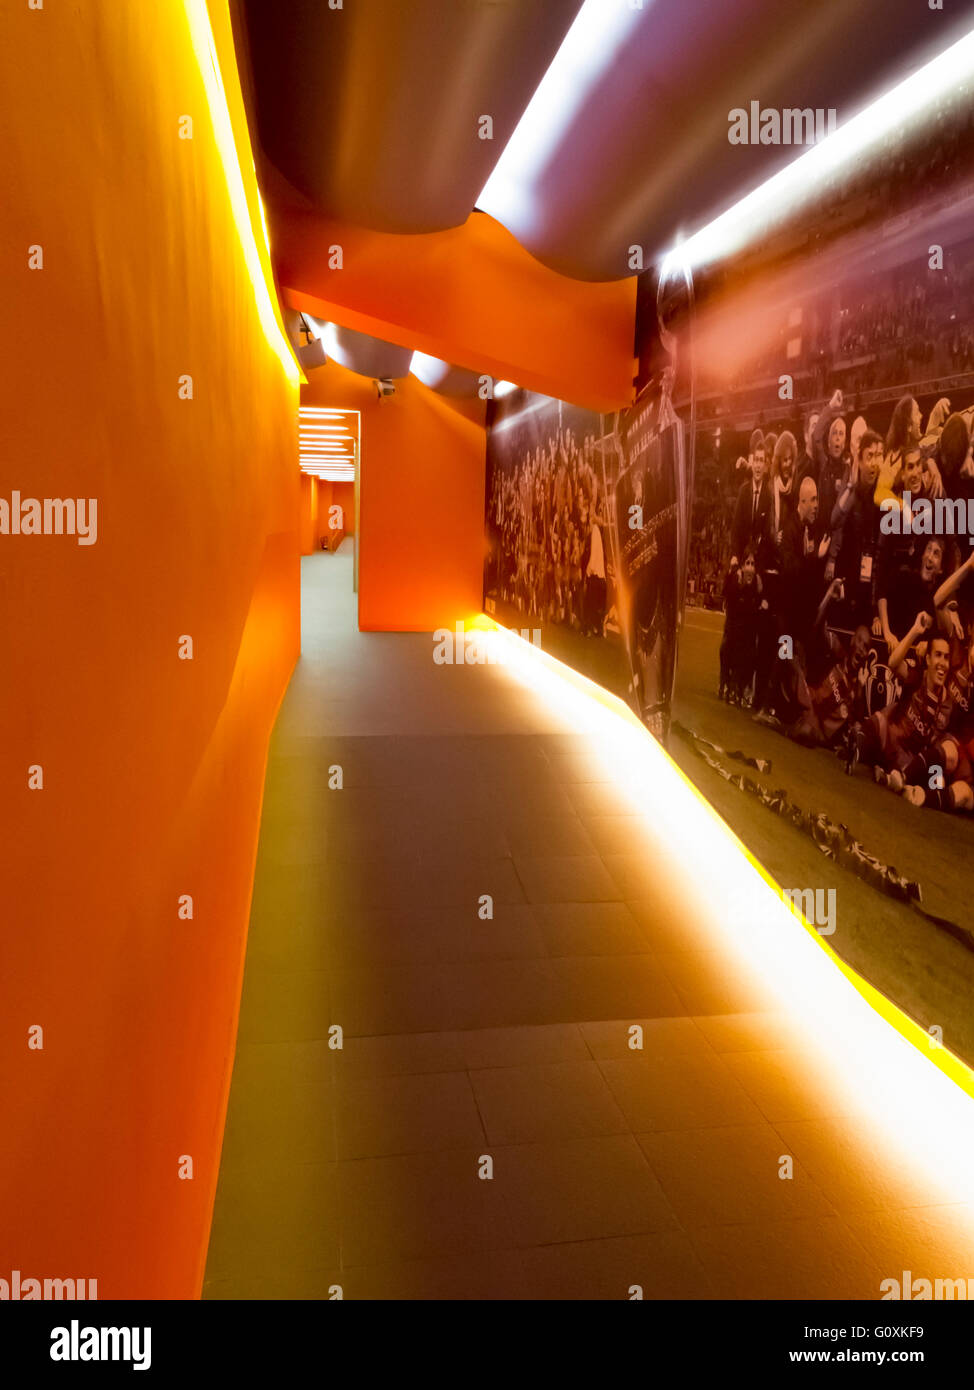 Corridor to the the home team changing room in FC Barcelona football club Camp Nou stadium, Barcelona, Spain - Stock Image